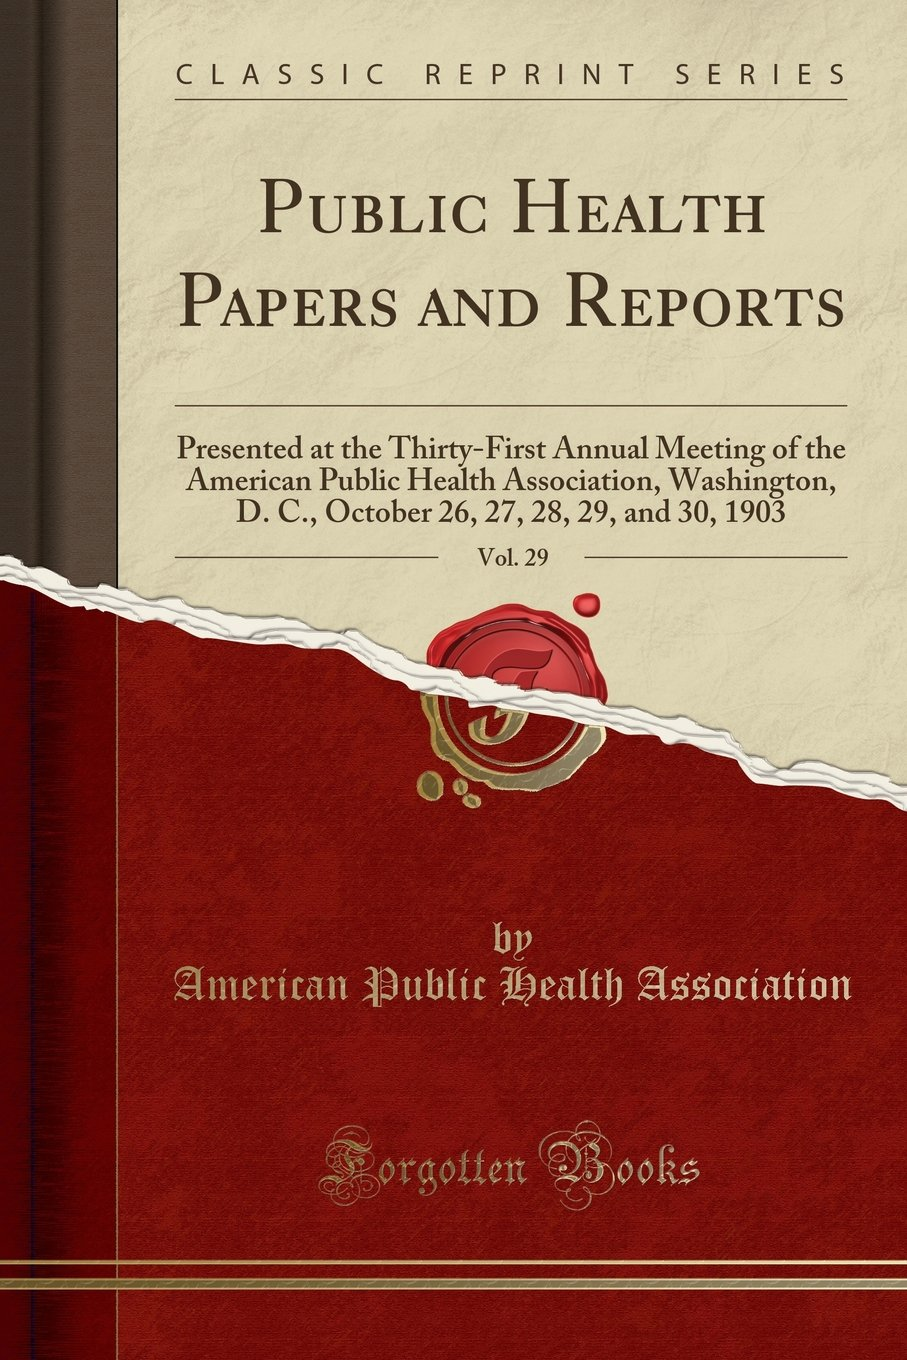 Public Health Papers and Reports, Vol. 29: Presented at the Thirty-First Annual Meeting of the American Public Health Association, Washington, D. C., ... 27, 28, 29, and 30, 1903 (Classic Reprint) pdf epub